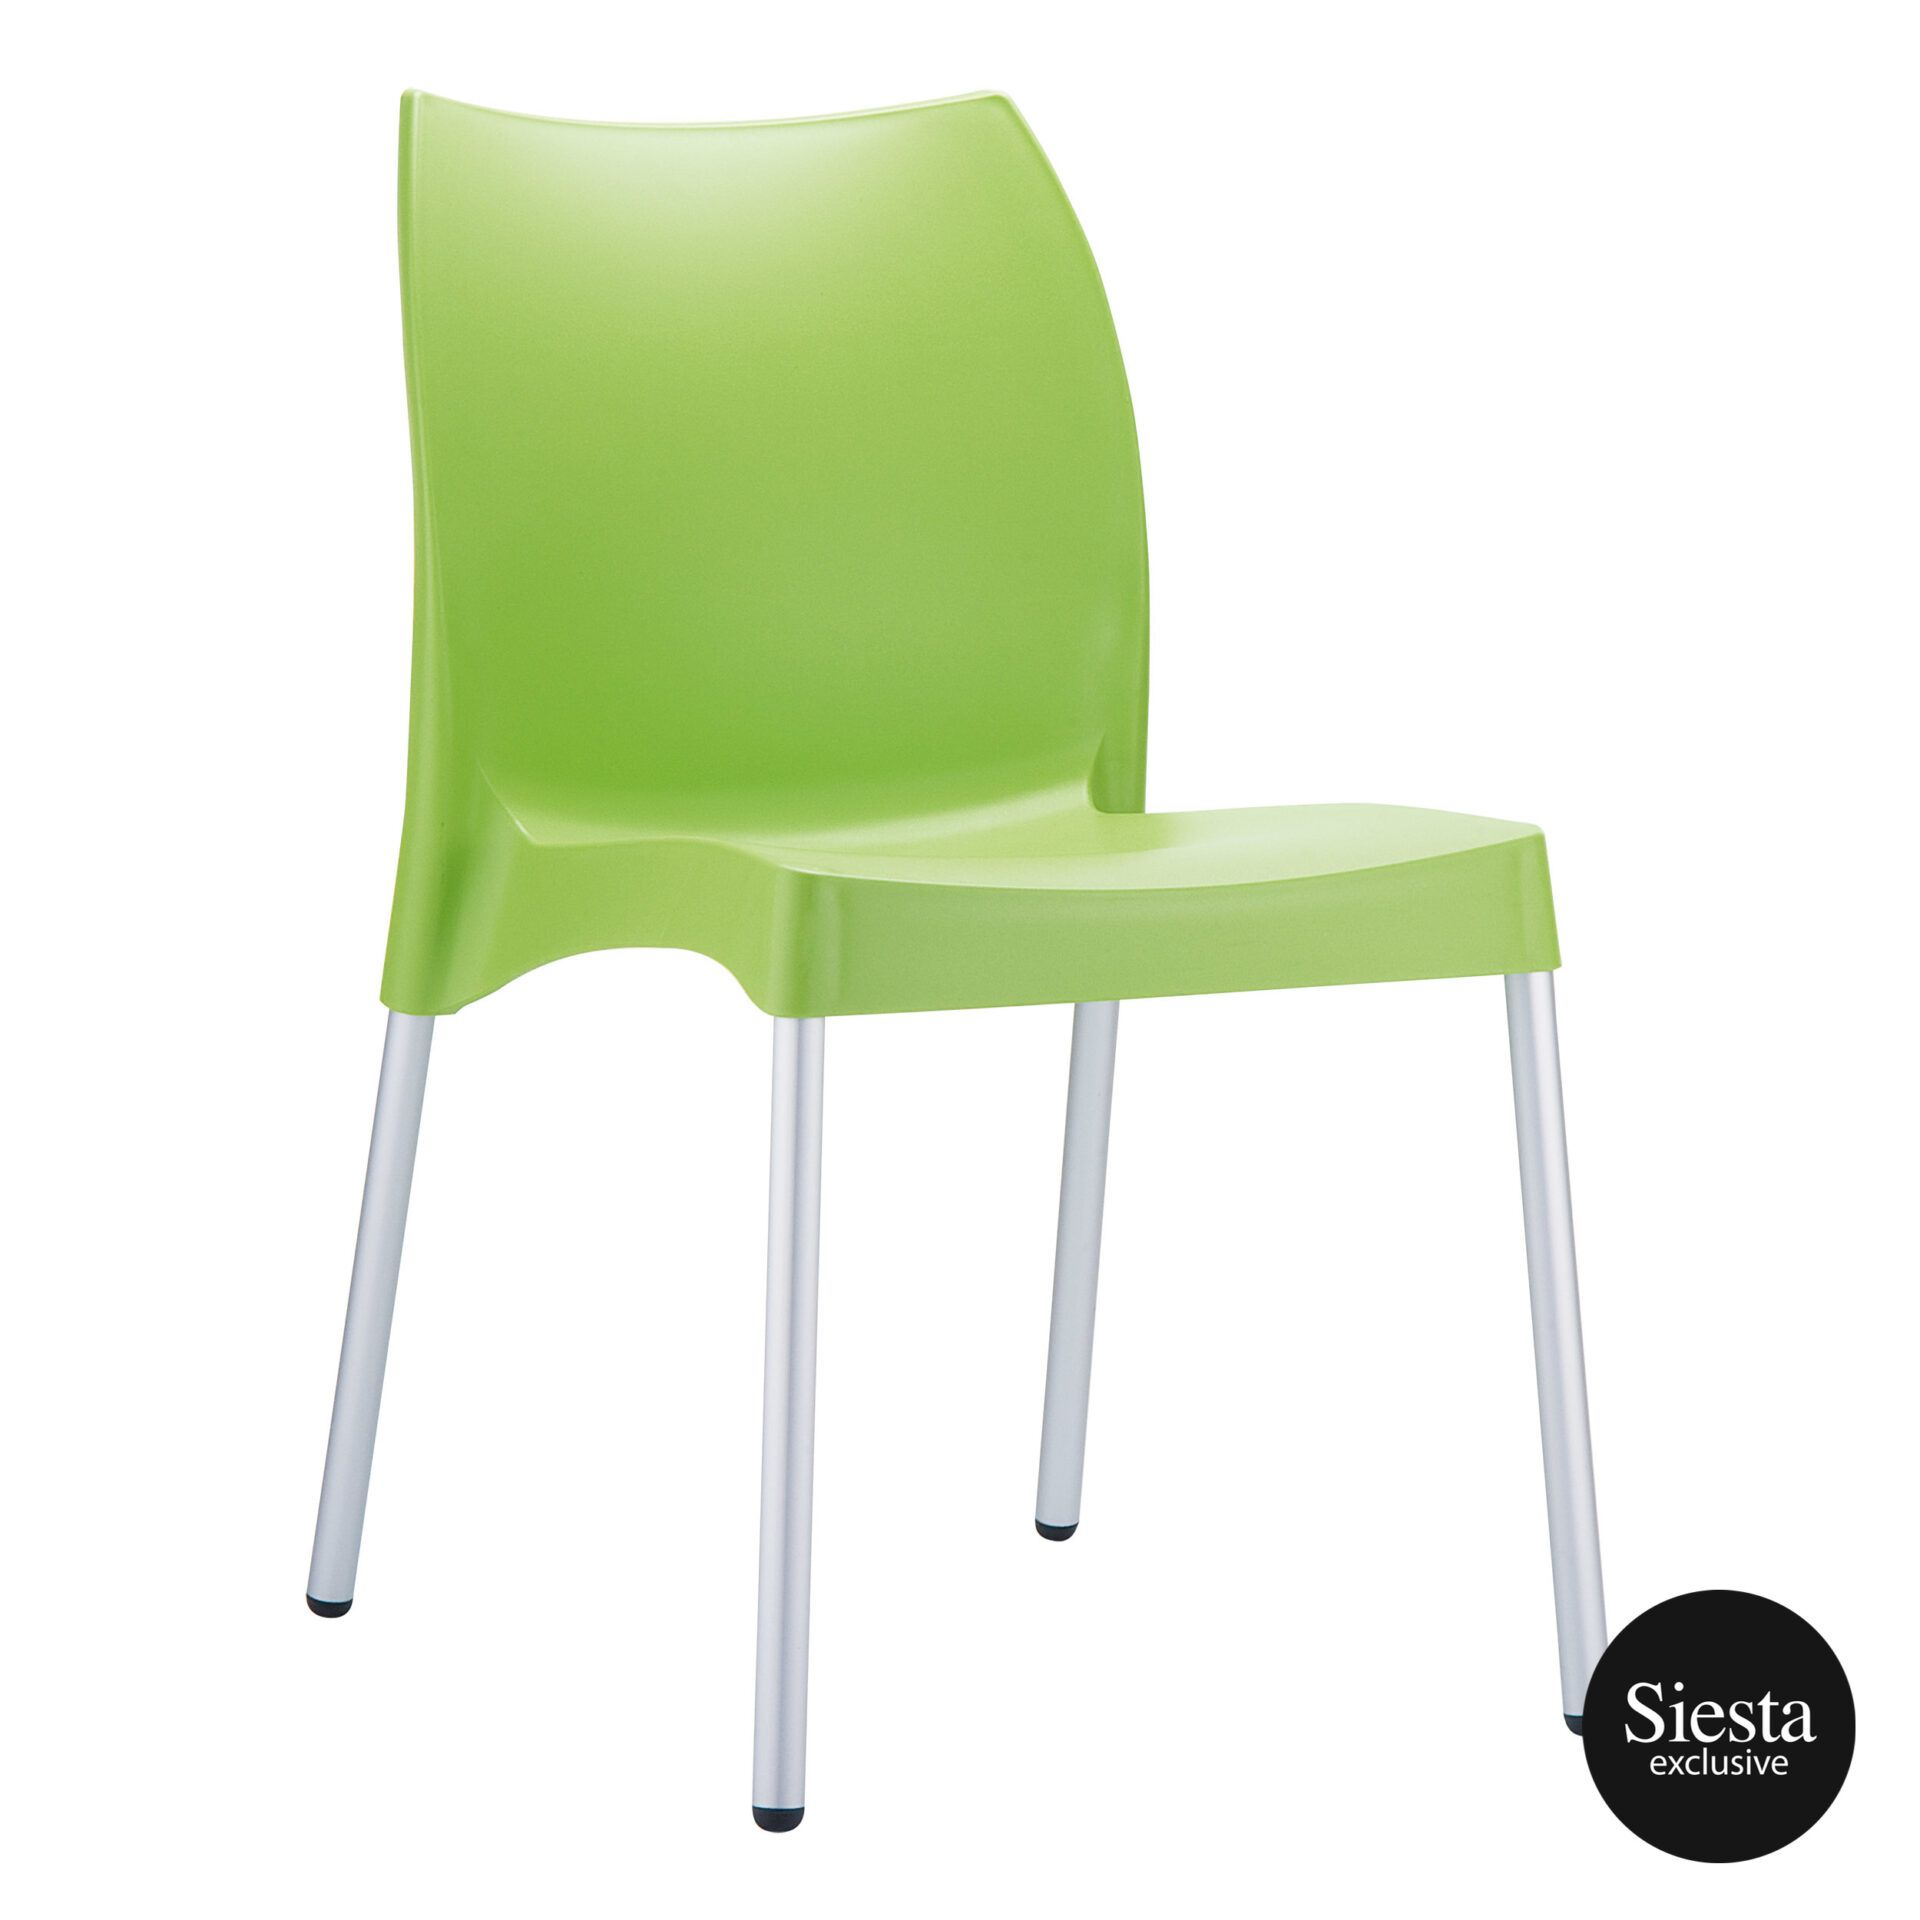 commercial outdoor hospitality seating vita chair green front side 1